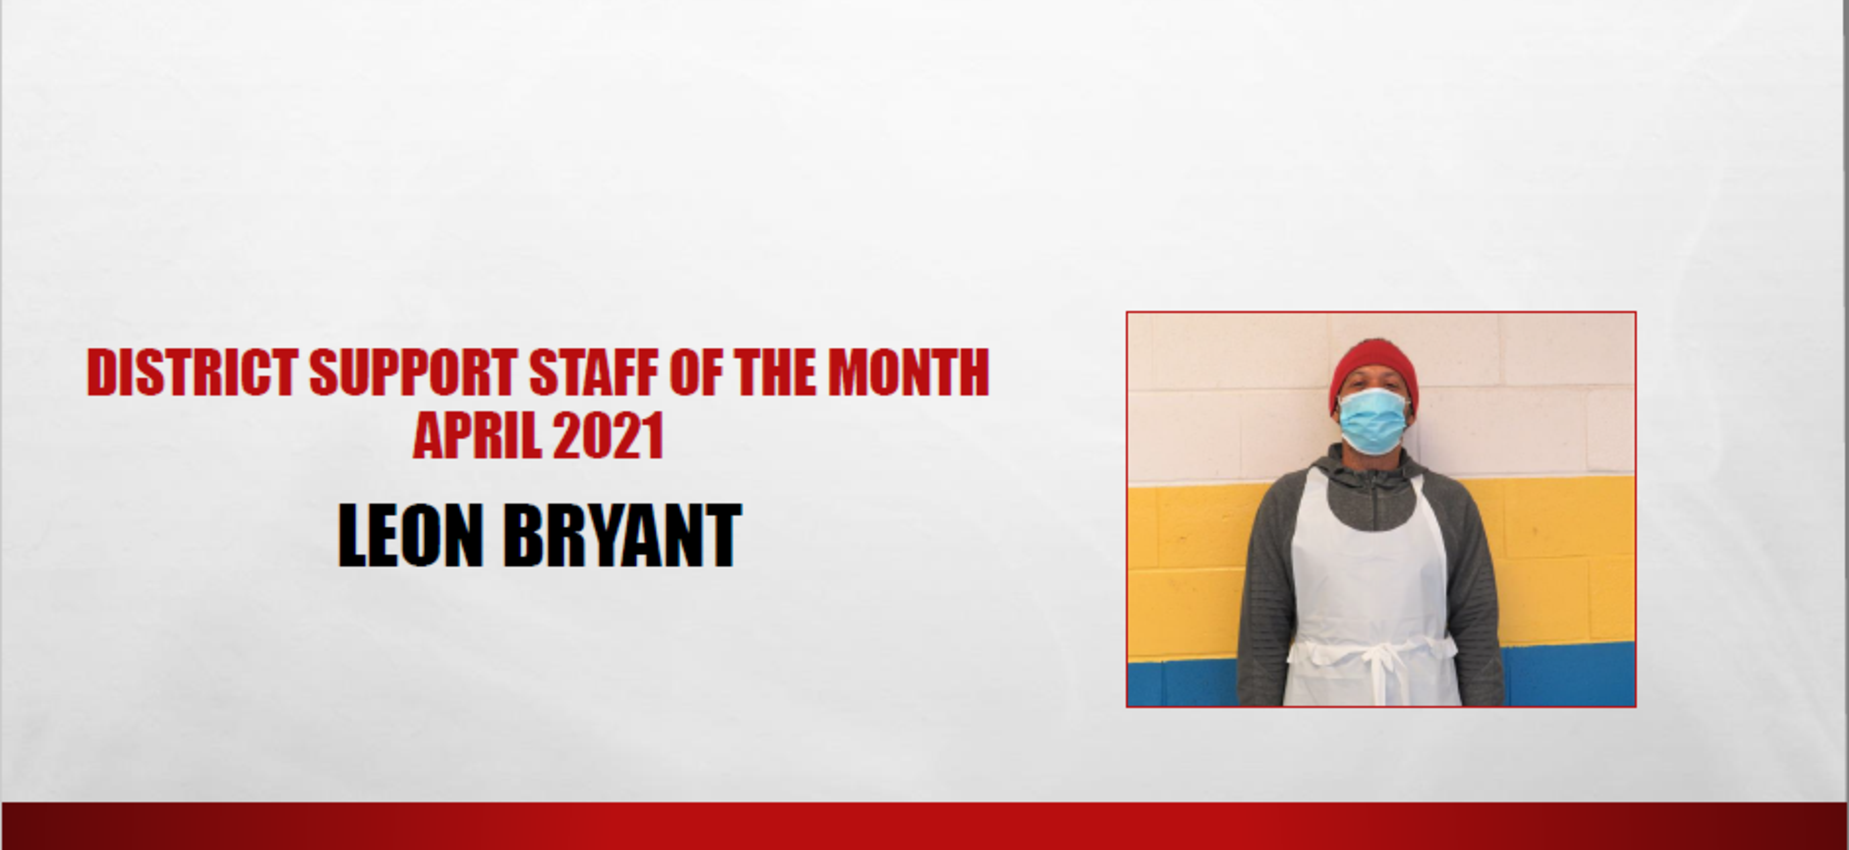 Leon Bryant April 2021 Support Staff of the Month